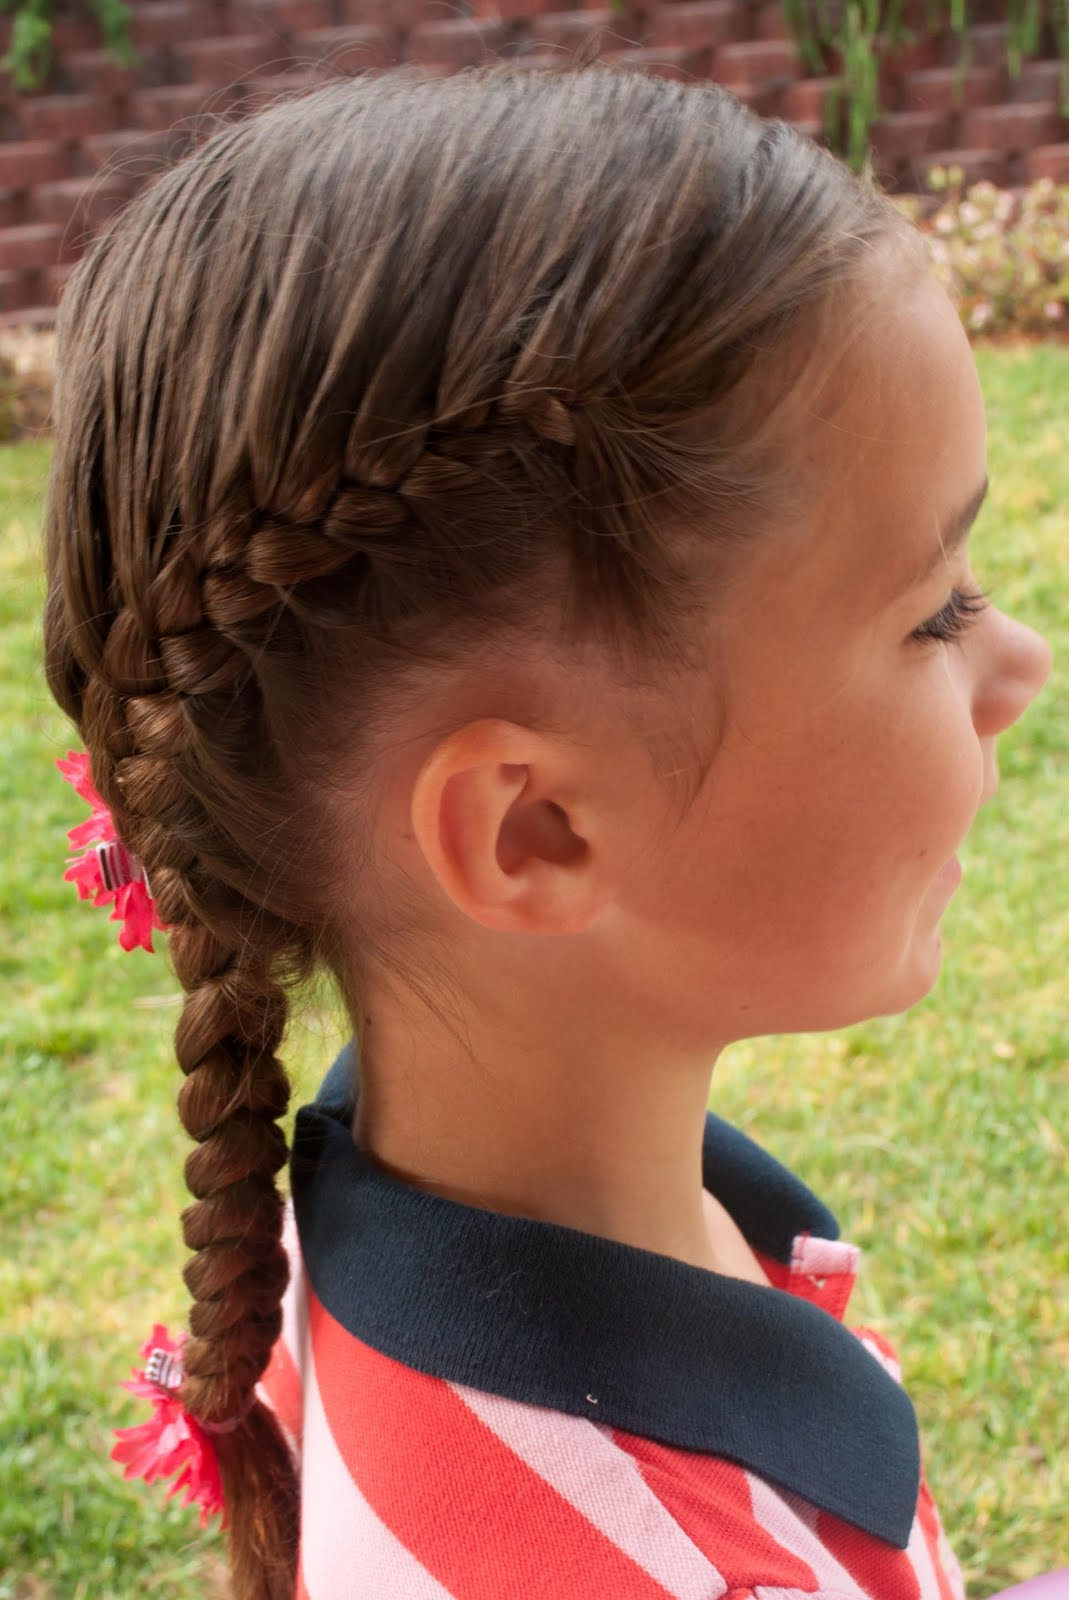 Cute French Braid Hairstyles for Kids